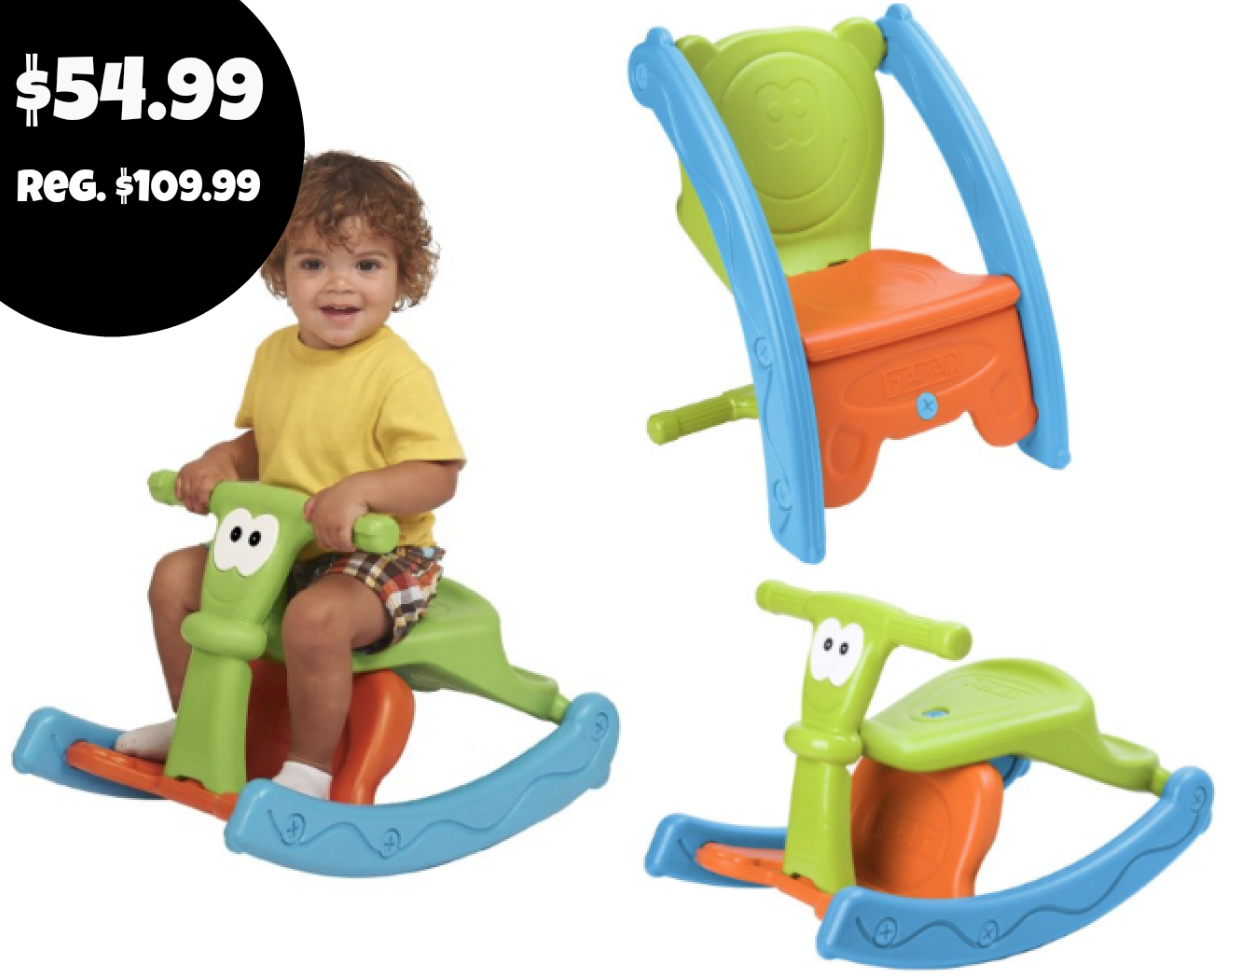 http://www.thebinderladies.com/2014/10/amazon-kids-sit-n-rock-2-in-1.html#.VEhp4Evdtbw